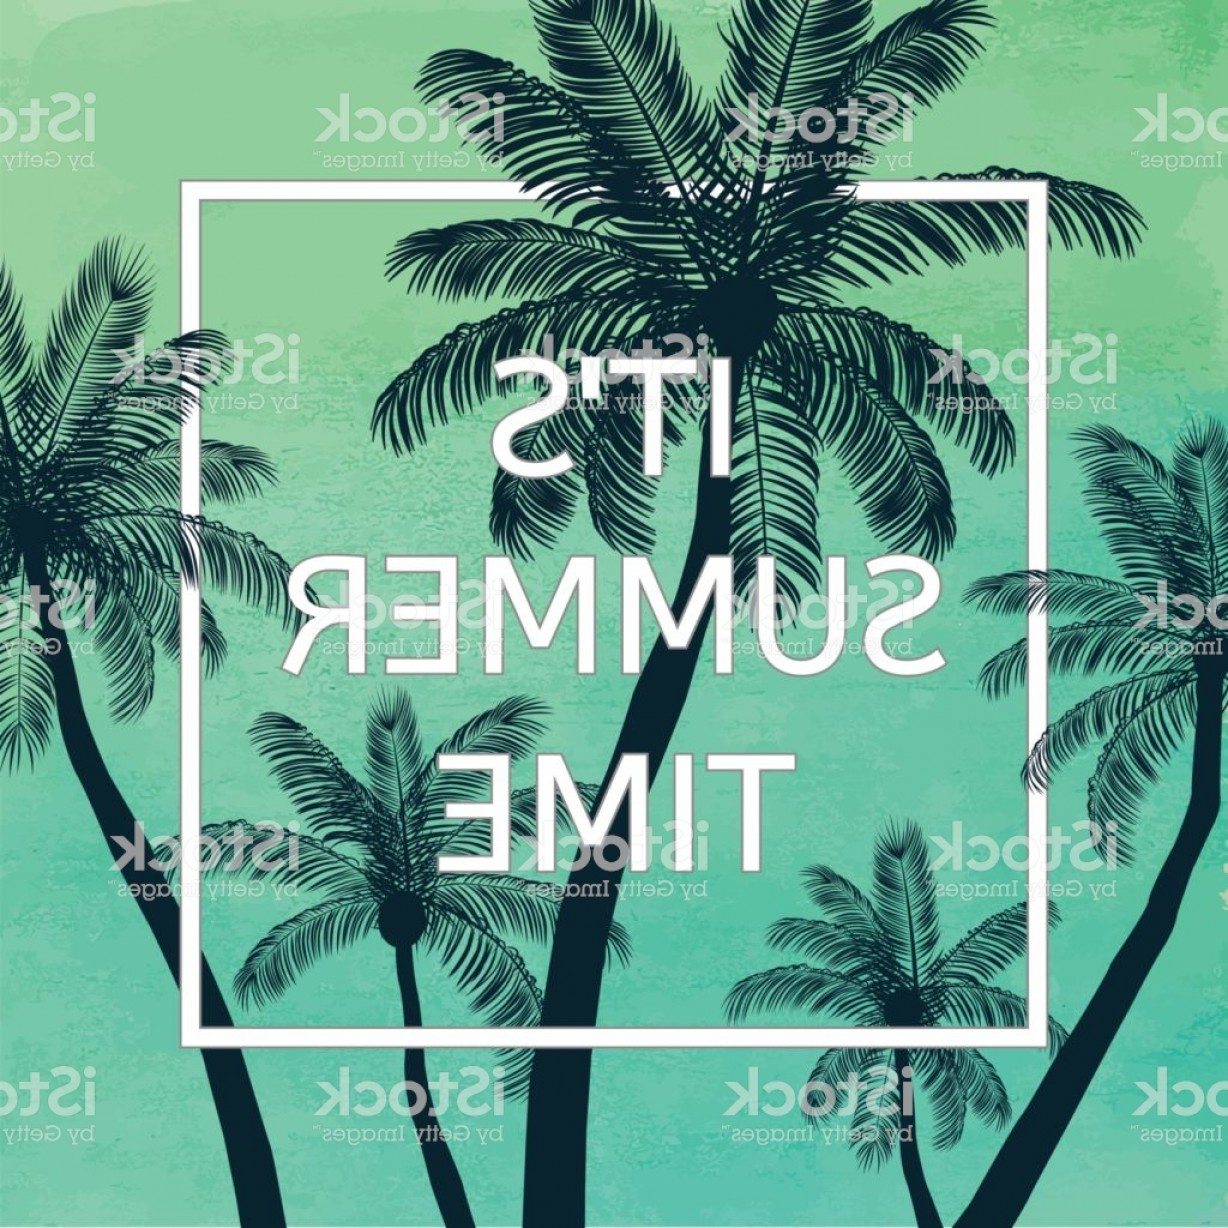 Watercolor Palm Tree Vector: Handmade Poster On Watercolor Background With Palm Trees Gm